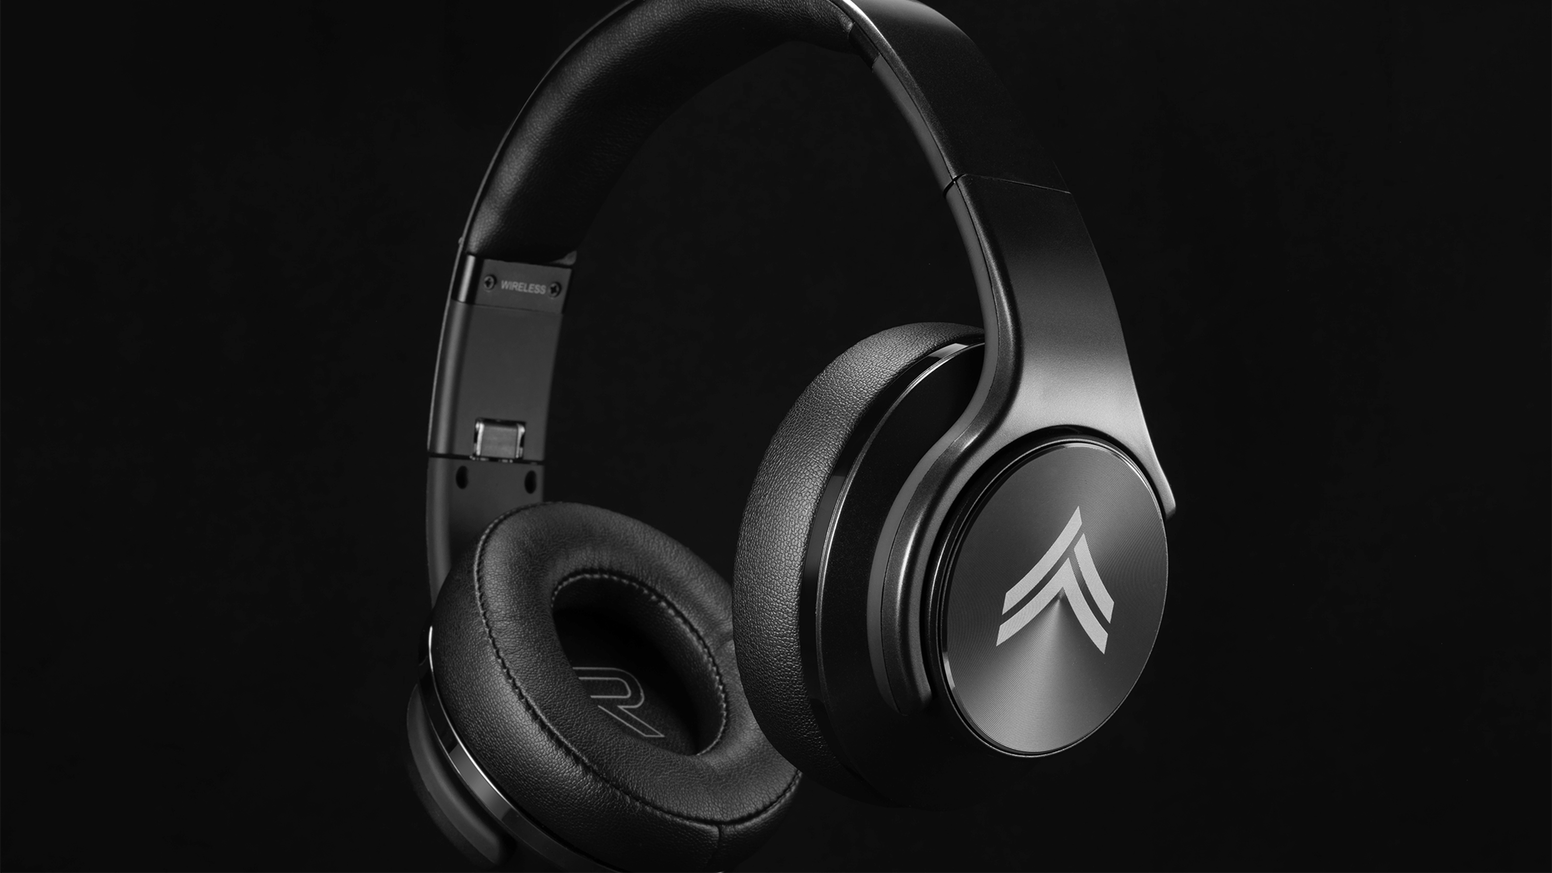 The ELITE-300 Is The Worlds First Durable Speaker Headphone. ARMED AUDIO+. Adjustable ANC.  Personalize Your Sound At Your Fingertips.